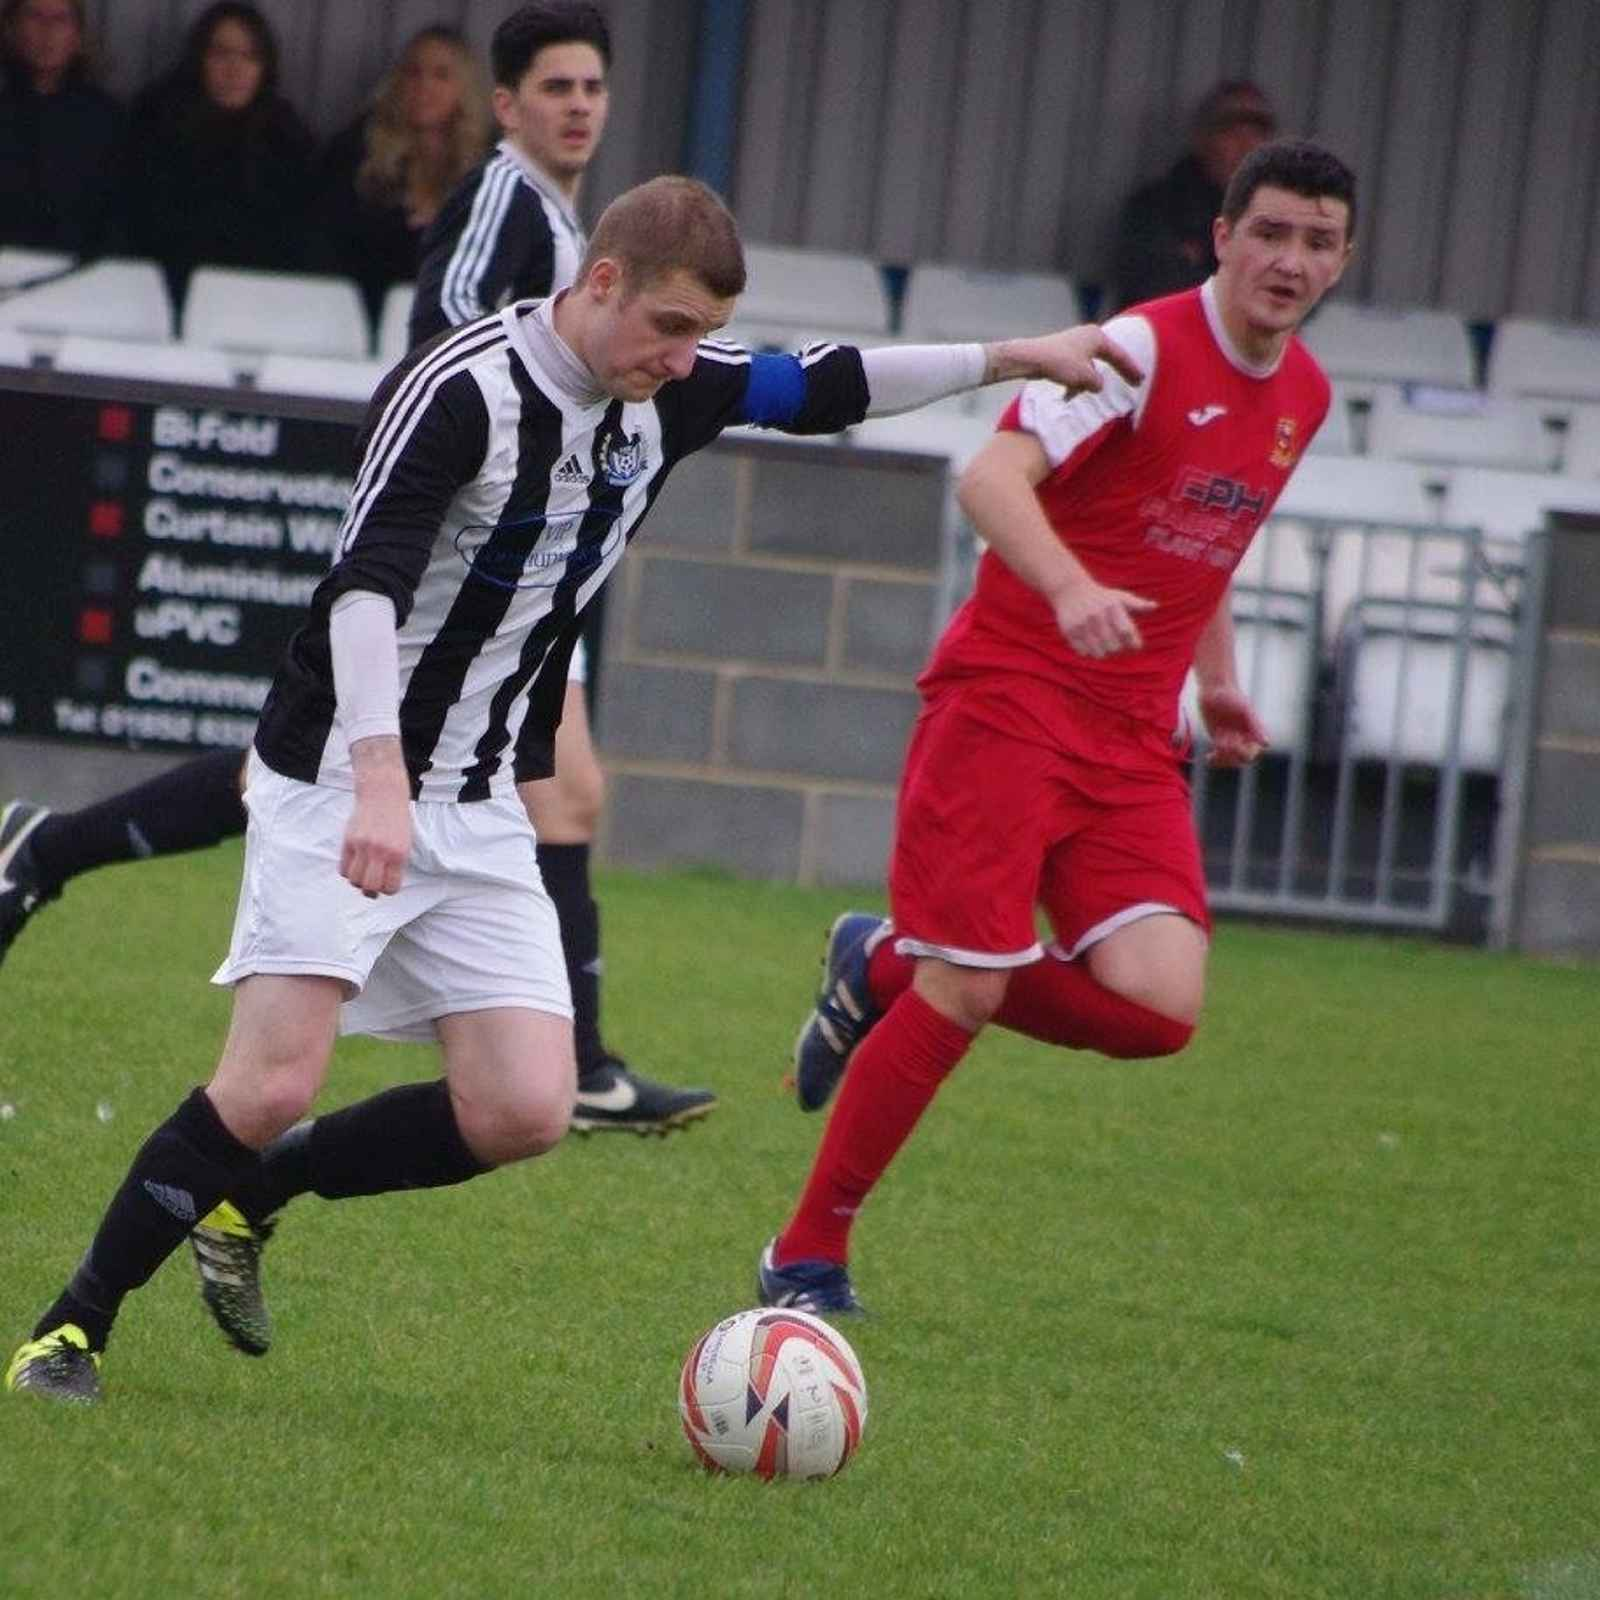 Westella v Selby Town